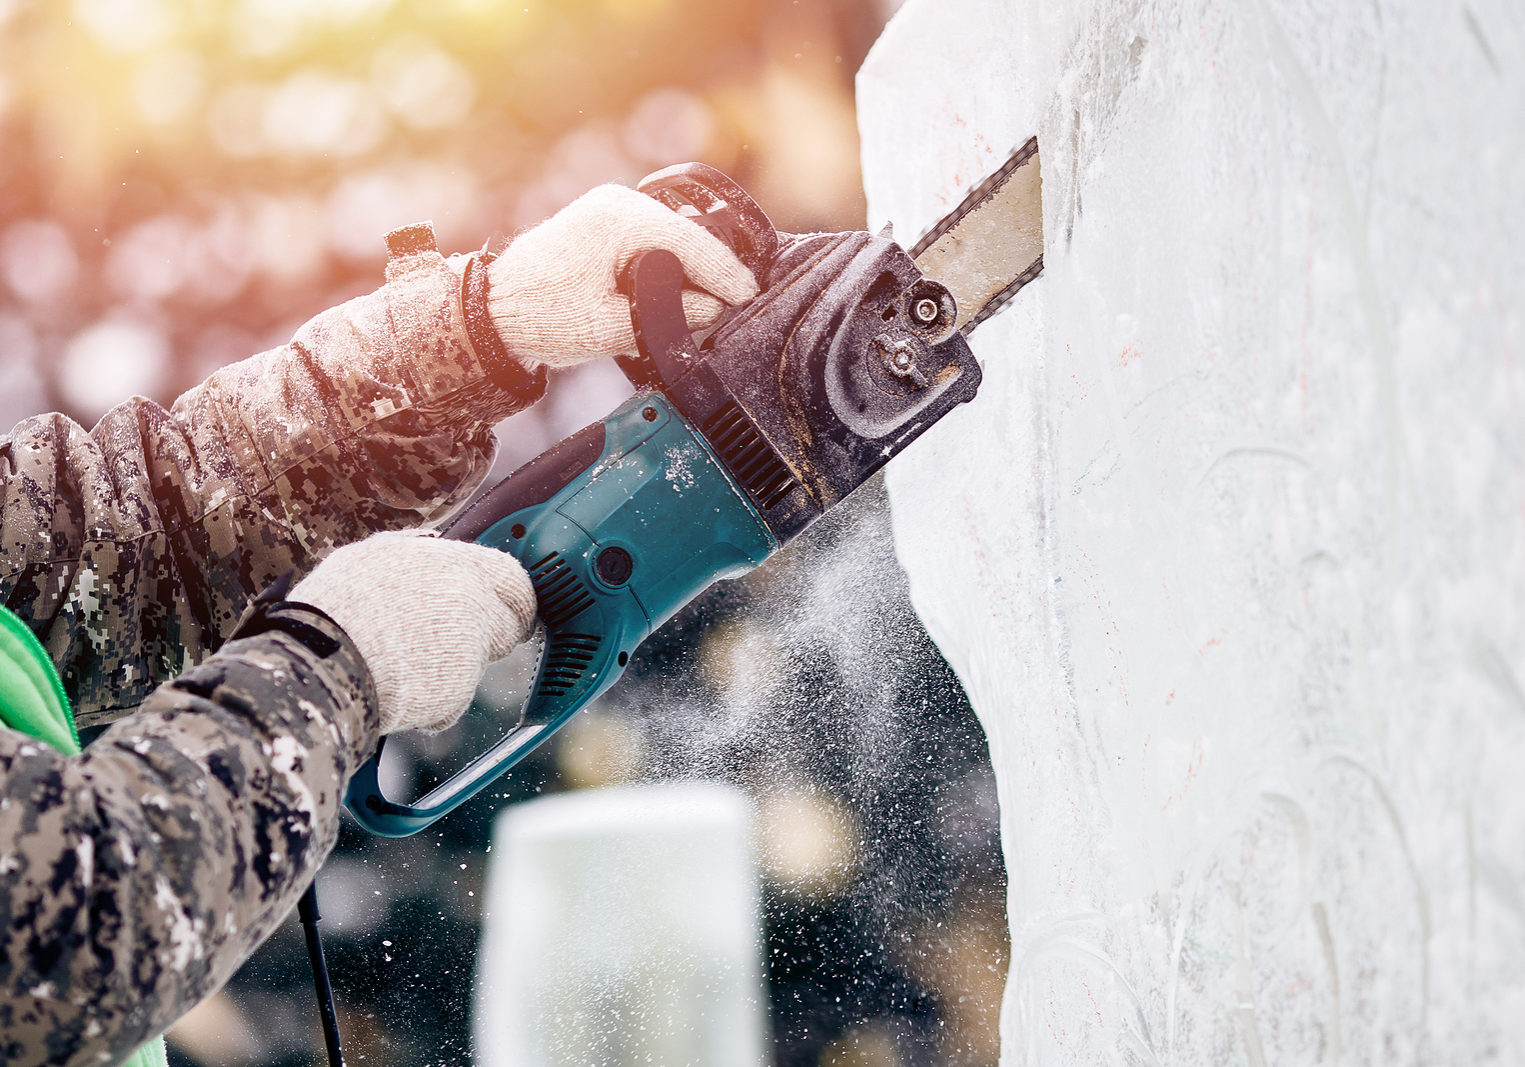 Ice sculpture carving man use chainsaw cut frozen winter